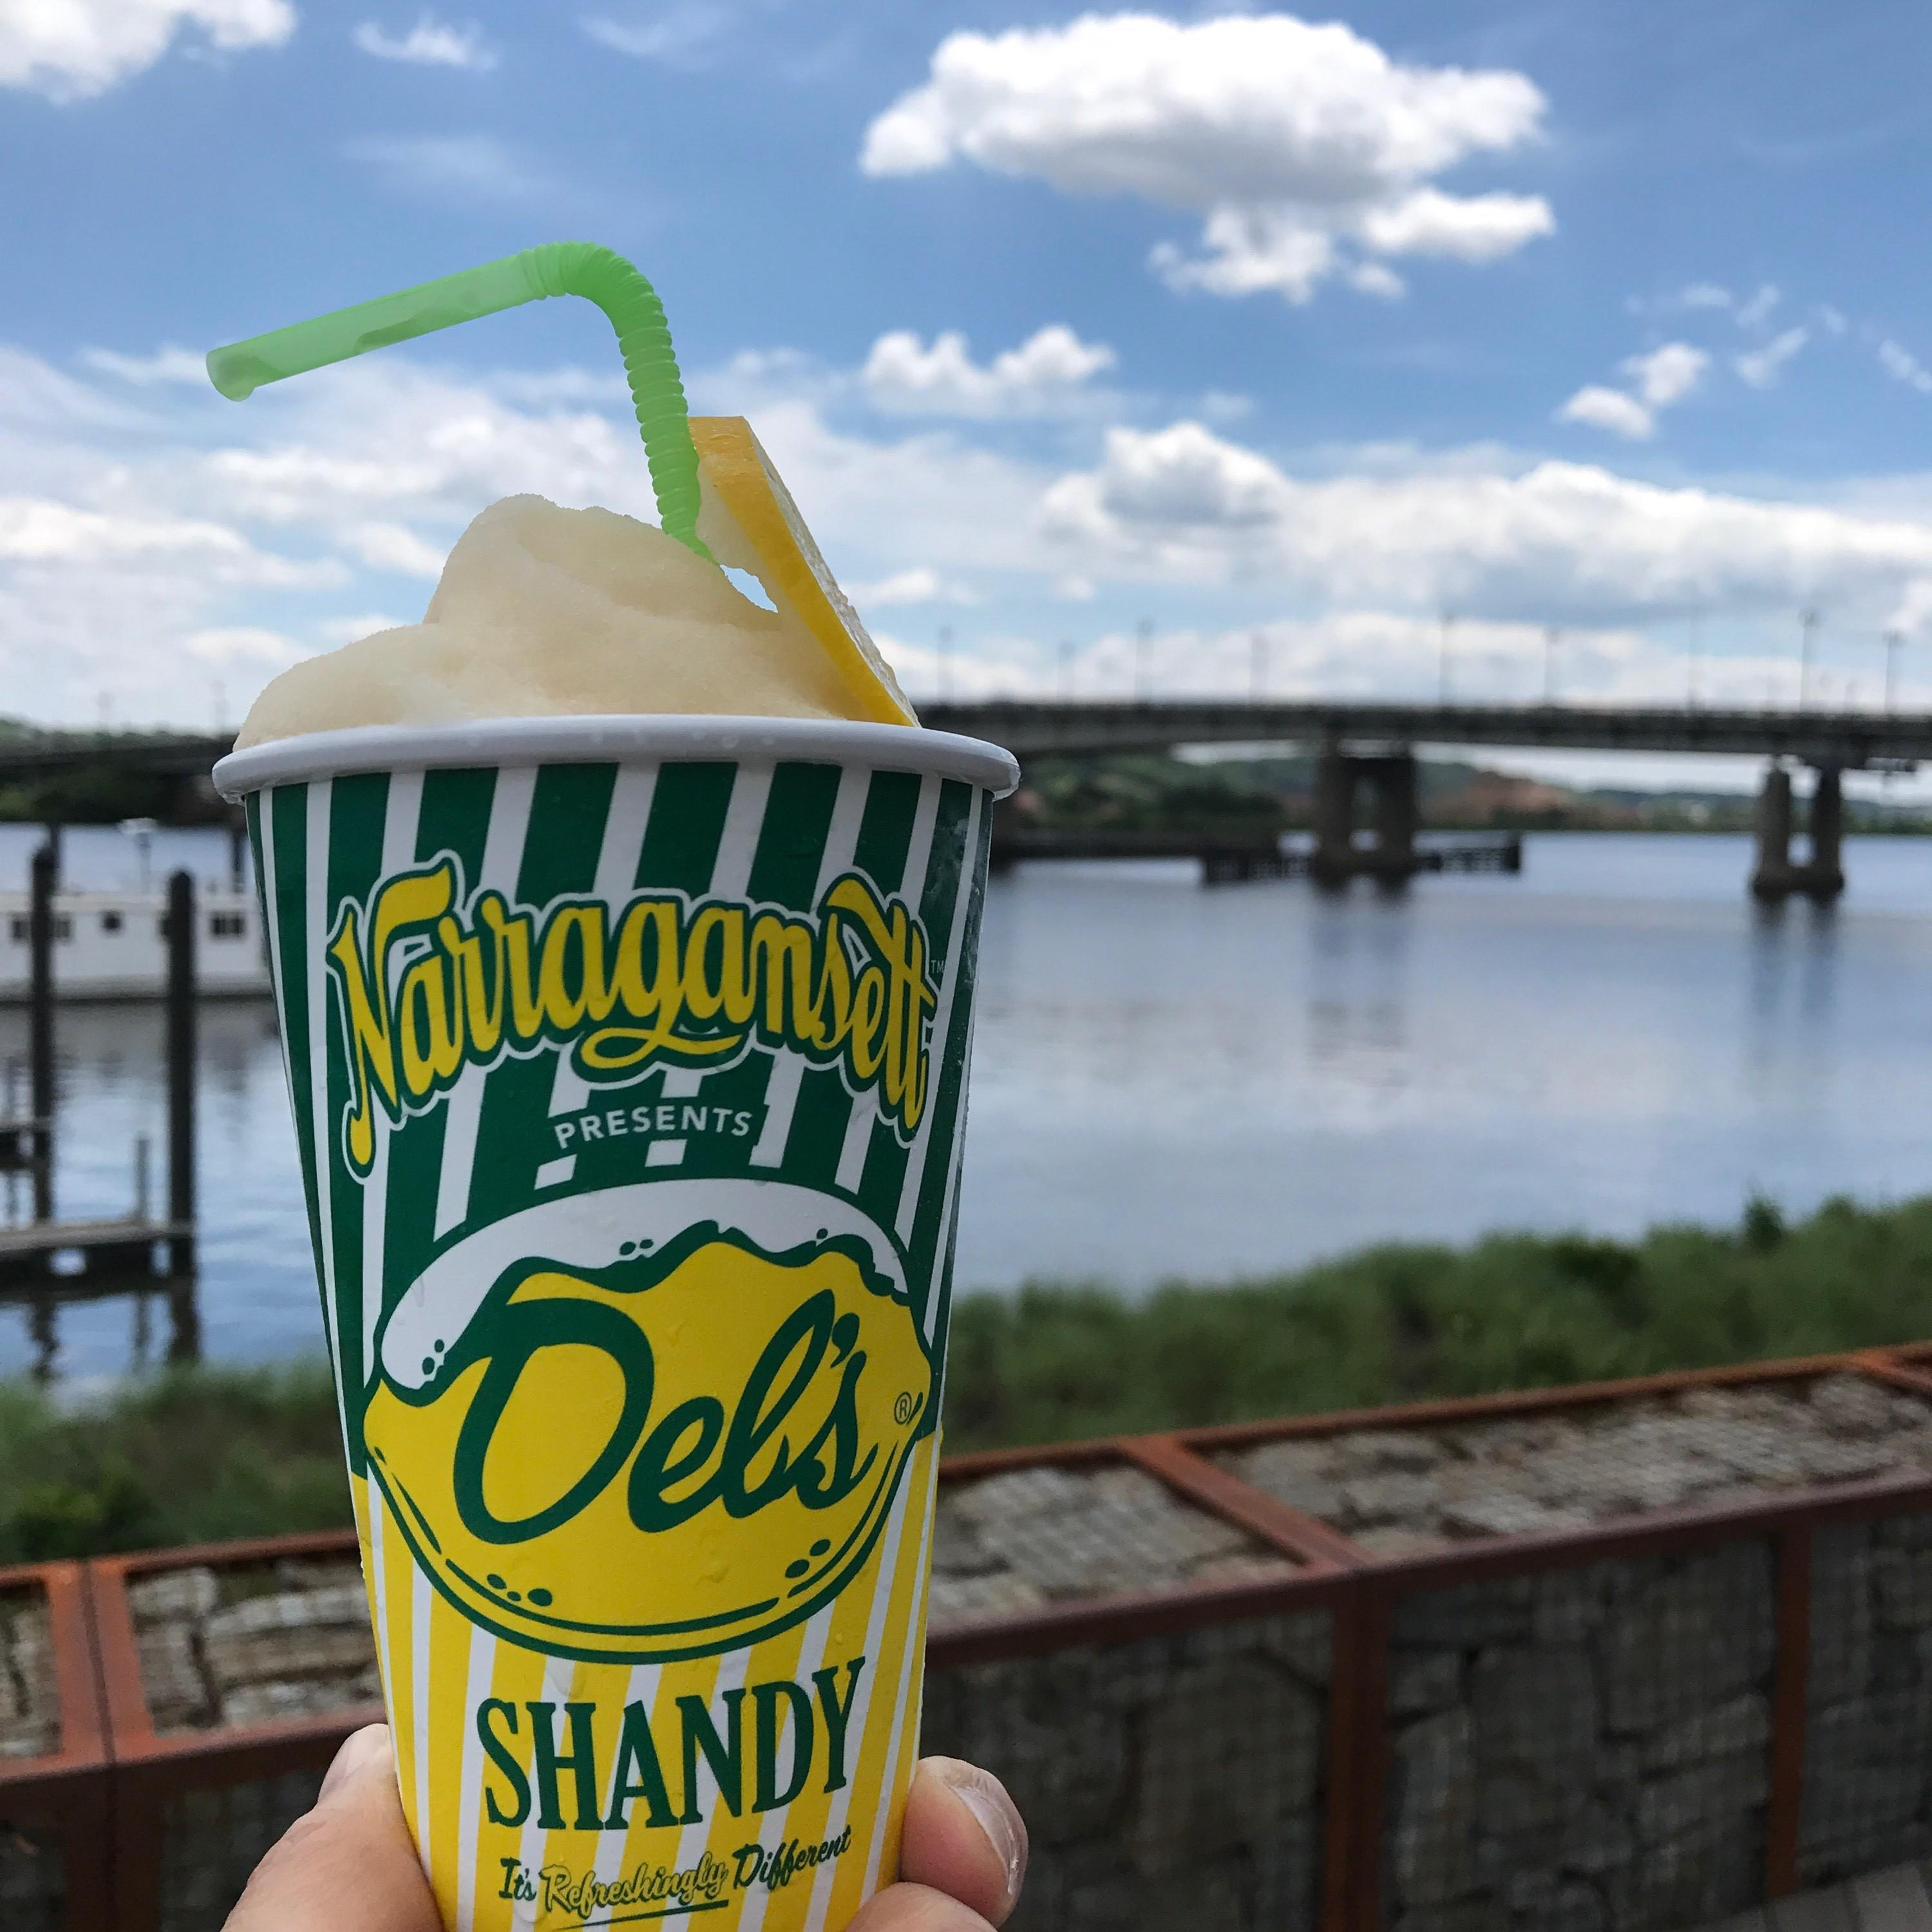 To celebrate the approach of spring, The Salt Line team has revamped the menu, including{&nbsp;}fun drinks from Beverage Director Donato Alvarez like the Del's frozen shandy. (Image: Courtesy The Salt Line)<p></p>